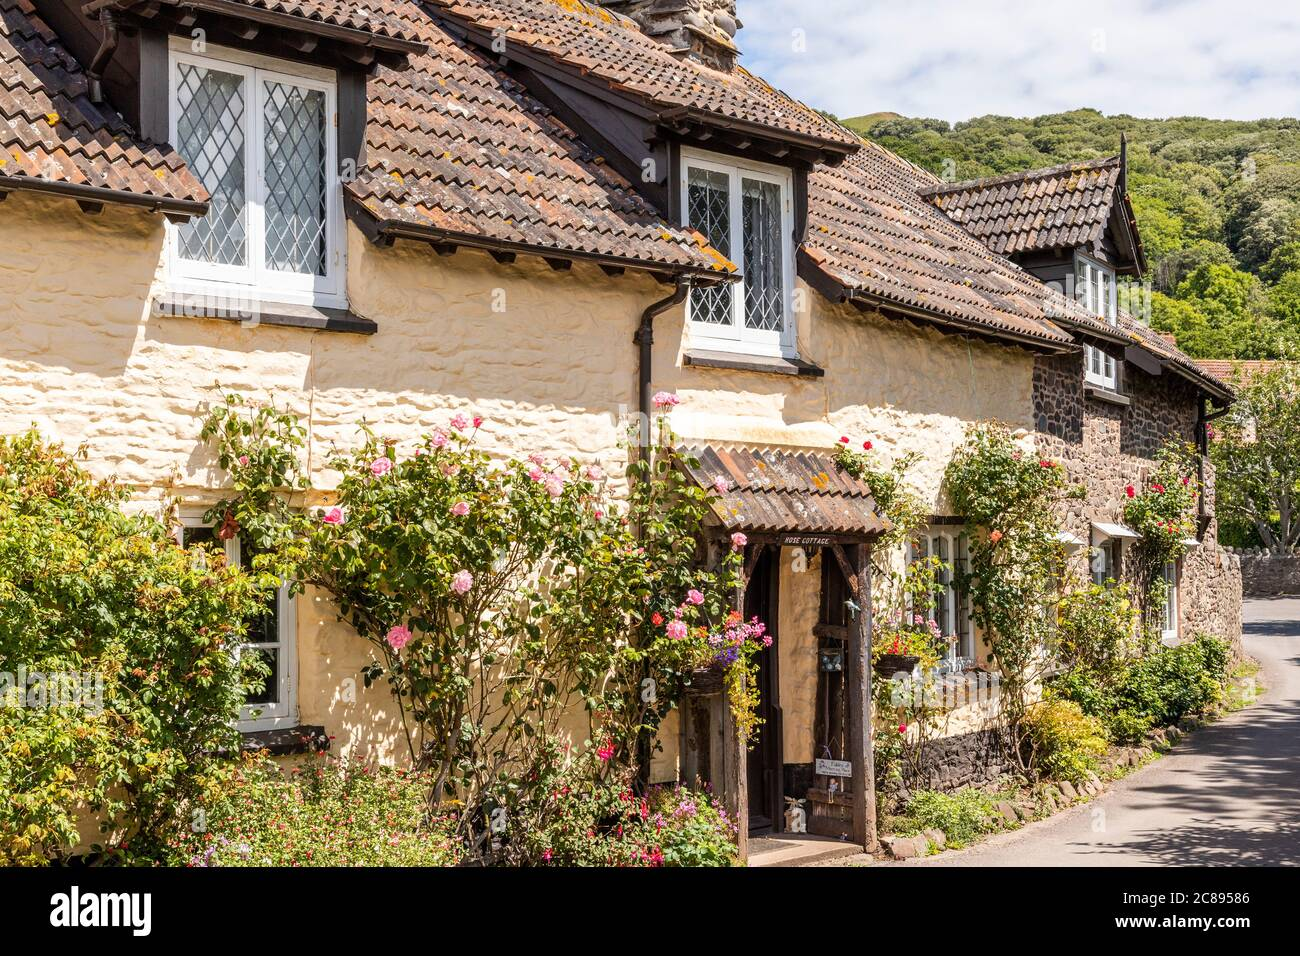 Roses flowering outside traditional tiled cottages on Exmoor National Park in the village of Bossington, Somerset UK Stock Photo